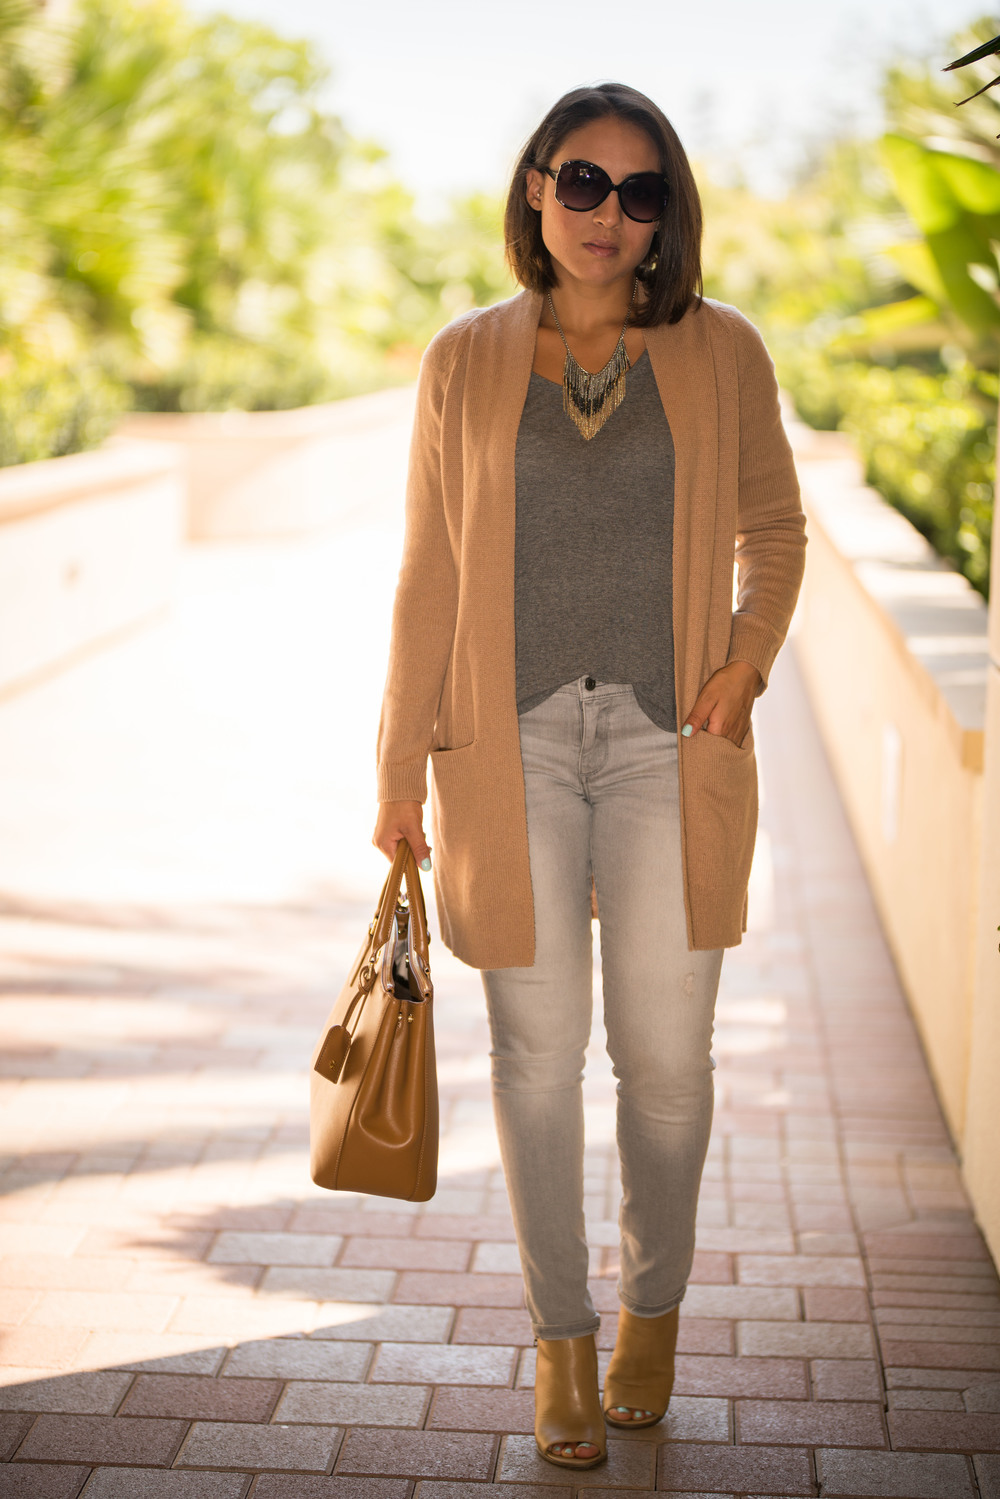 Cardigan:  Nordstrom  | Booties:  Steve Madden  | Denim:  Banana Republic  | Top:  Splendid  | Purse:  Tory Burch